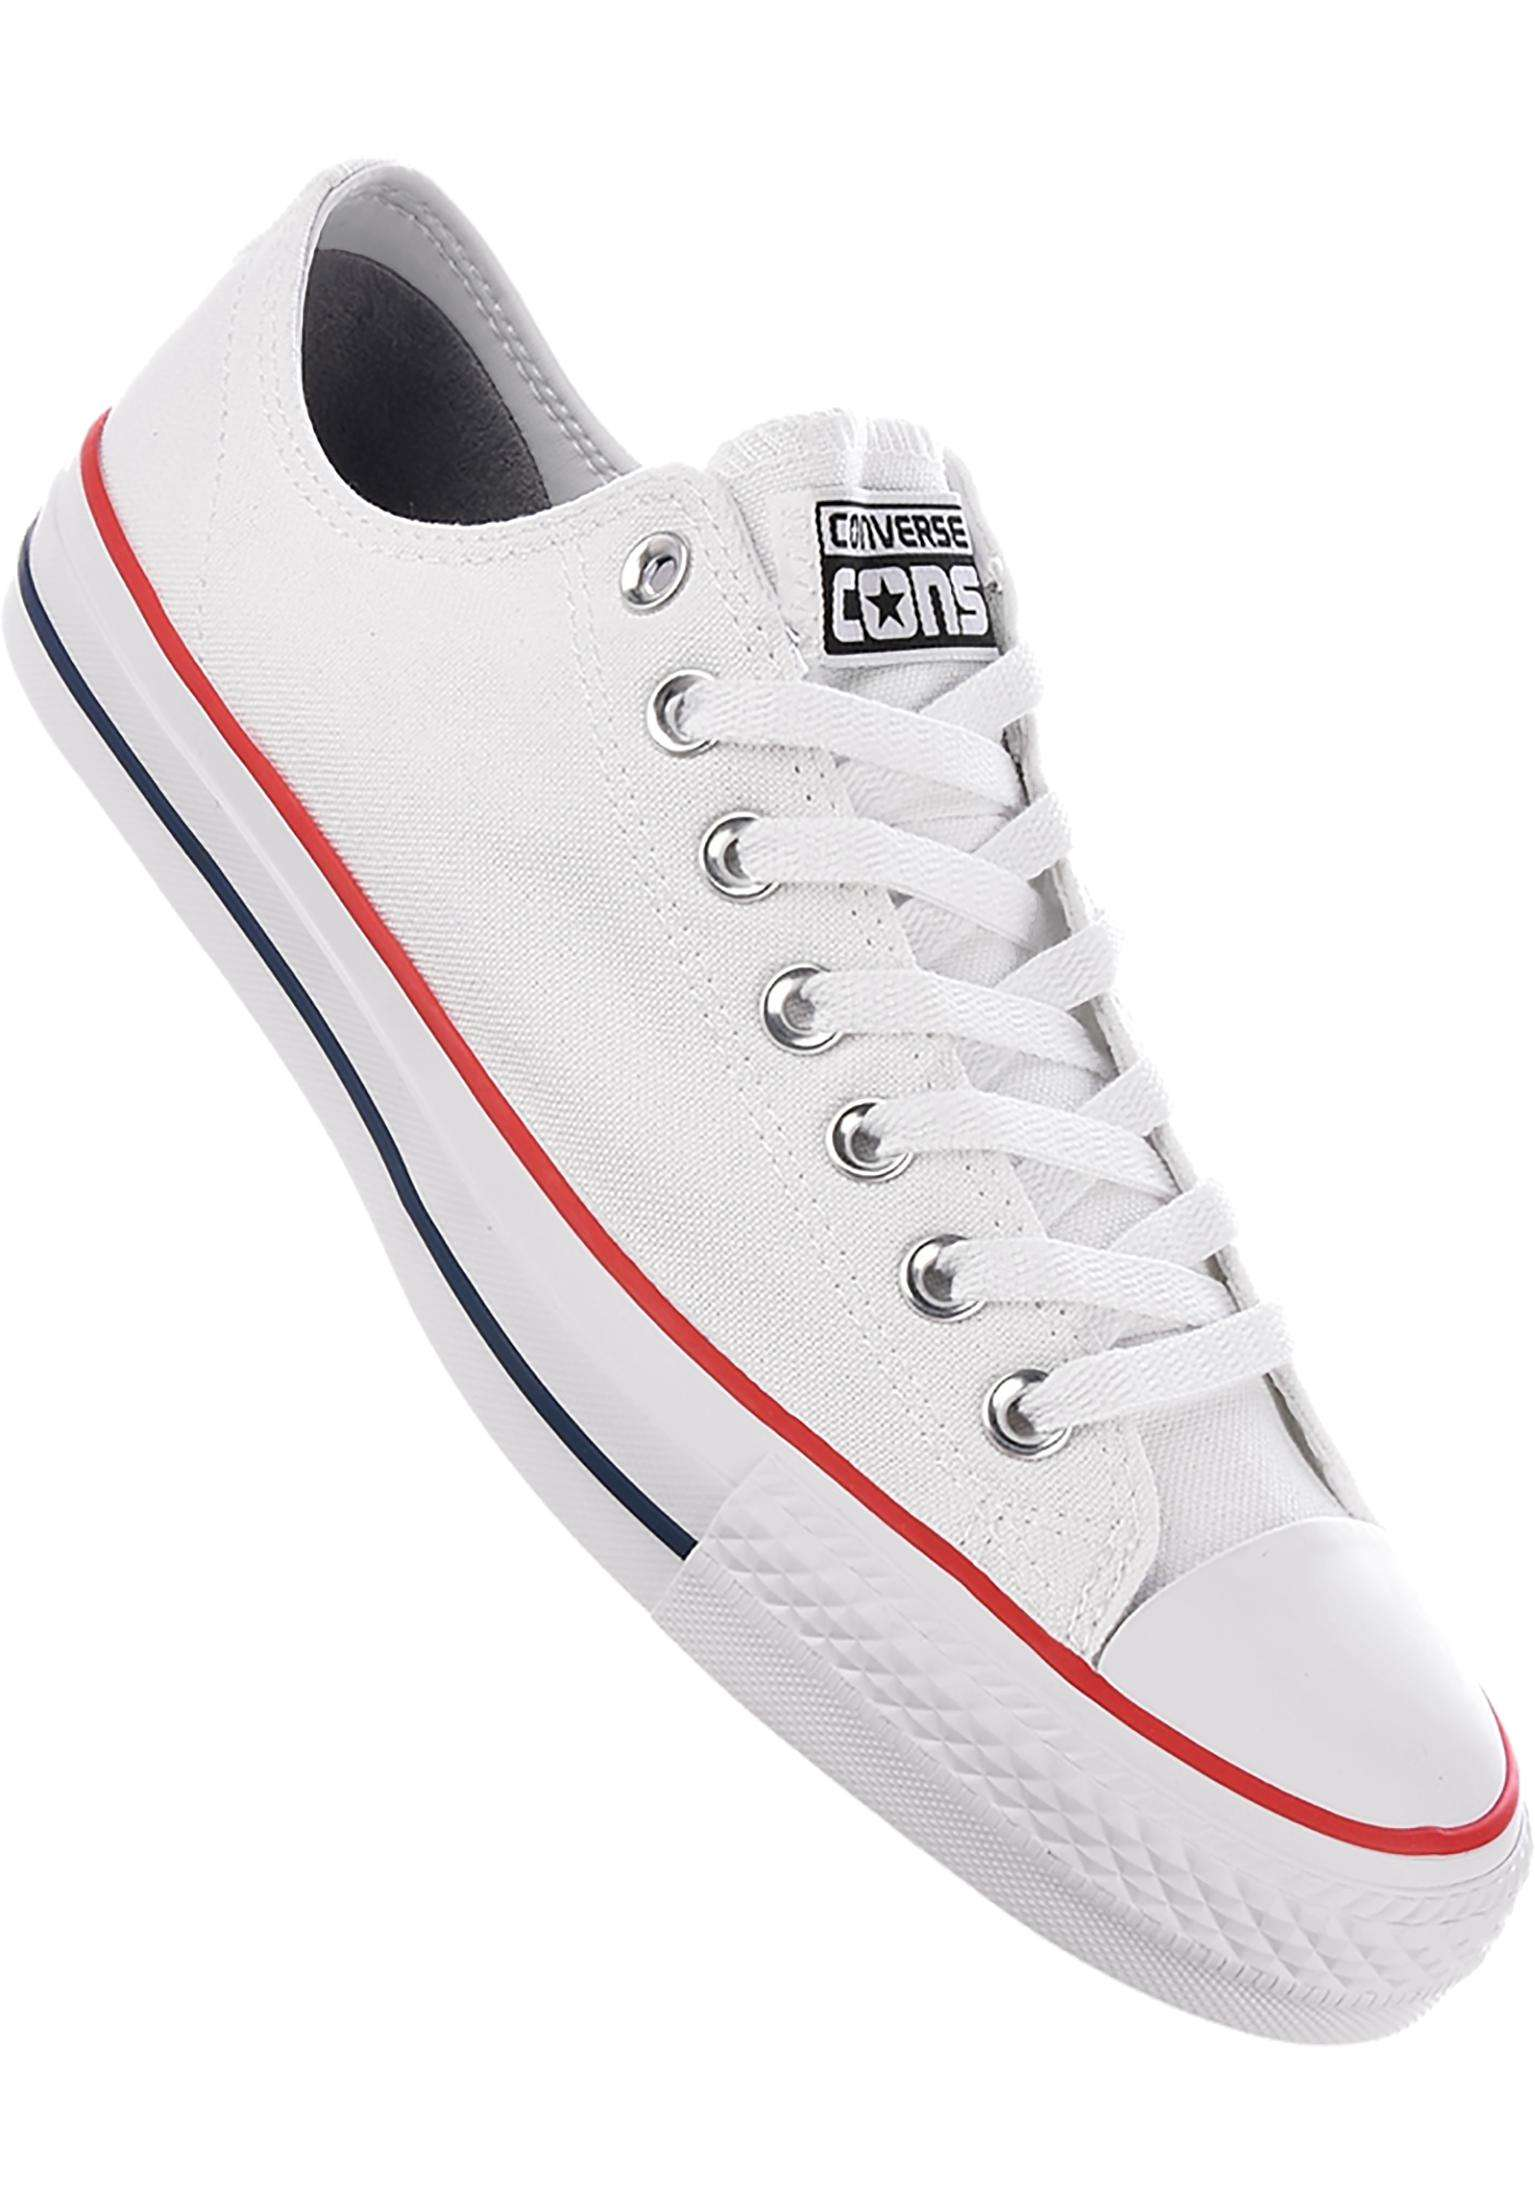 CTAS Pro OX Converse CONS All Shoes in white-white for Men  4d784be30